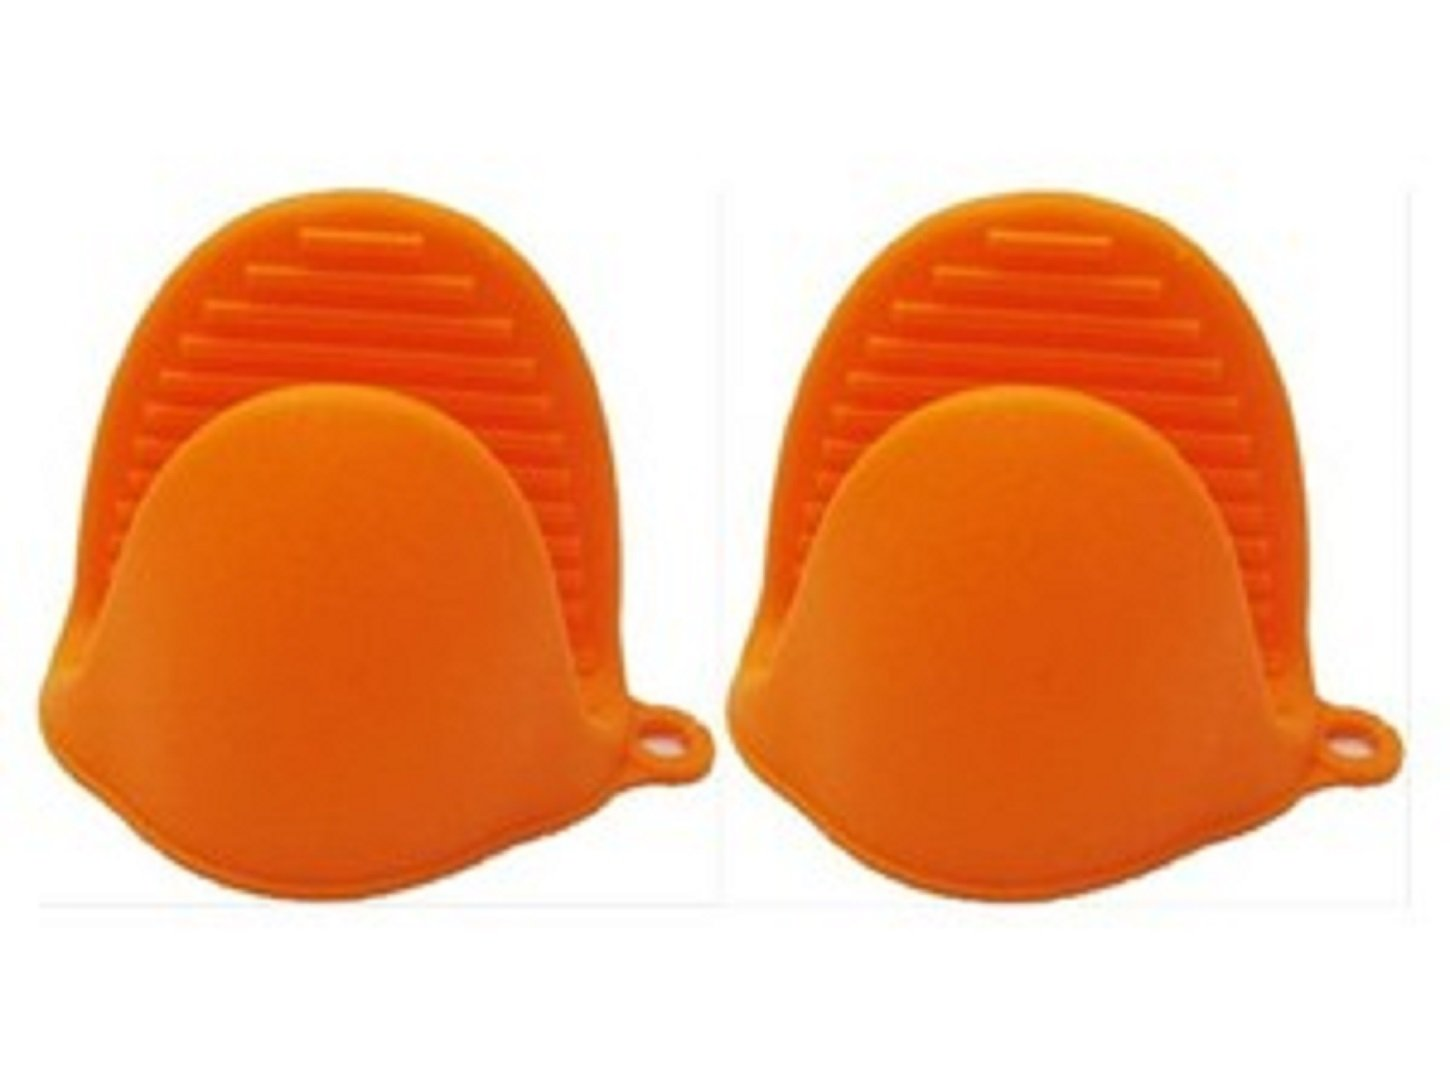 Kitch N' Wear - Silicone Pot Holder Oven Mini Mitt 1 Pair (2pc), Cooking Pinch Grips - Heat Resistant - (Orange) Kayco USA